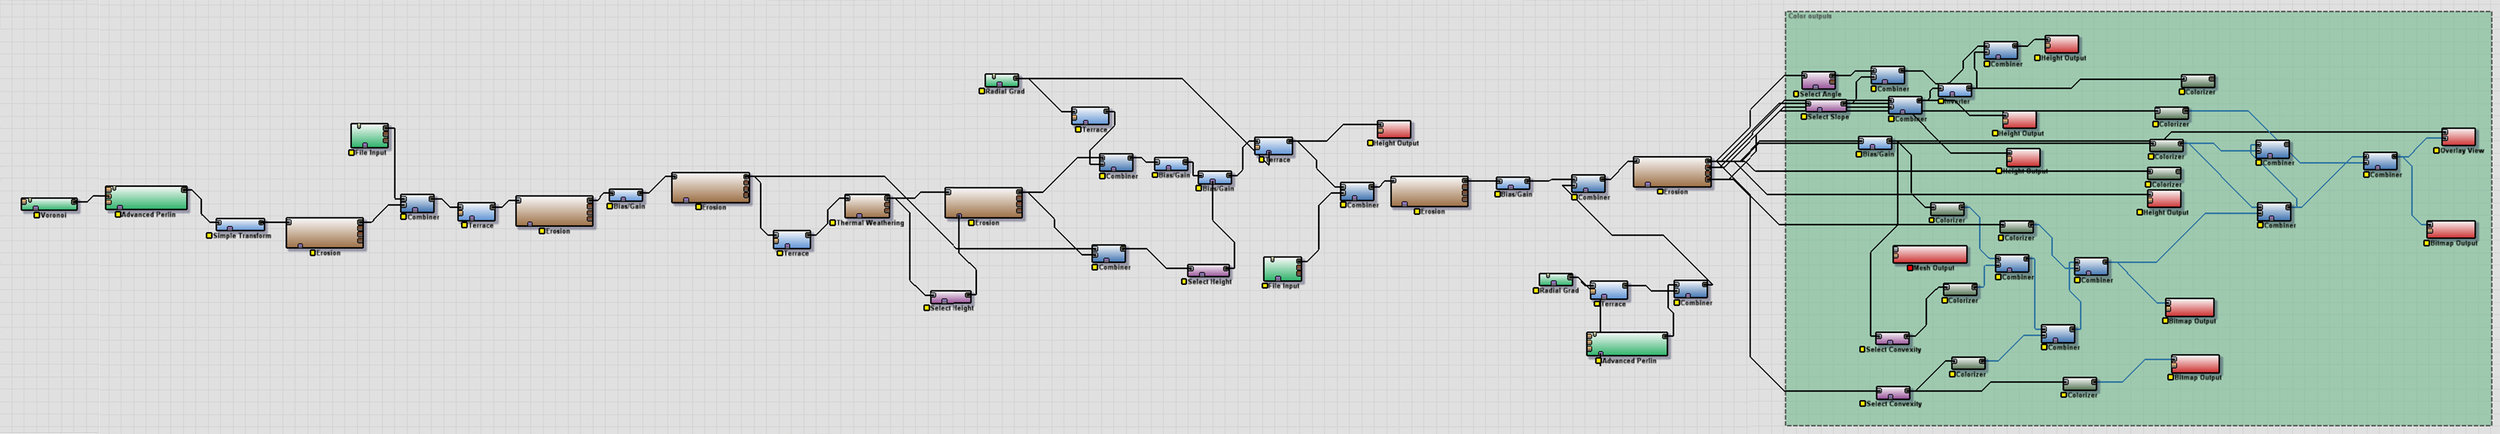 My terrain network. Iterated and output several times to keep it simple and fast. This is probably 1/4 the actual network